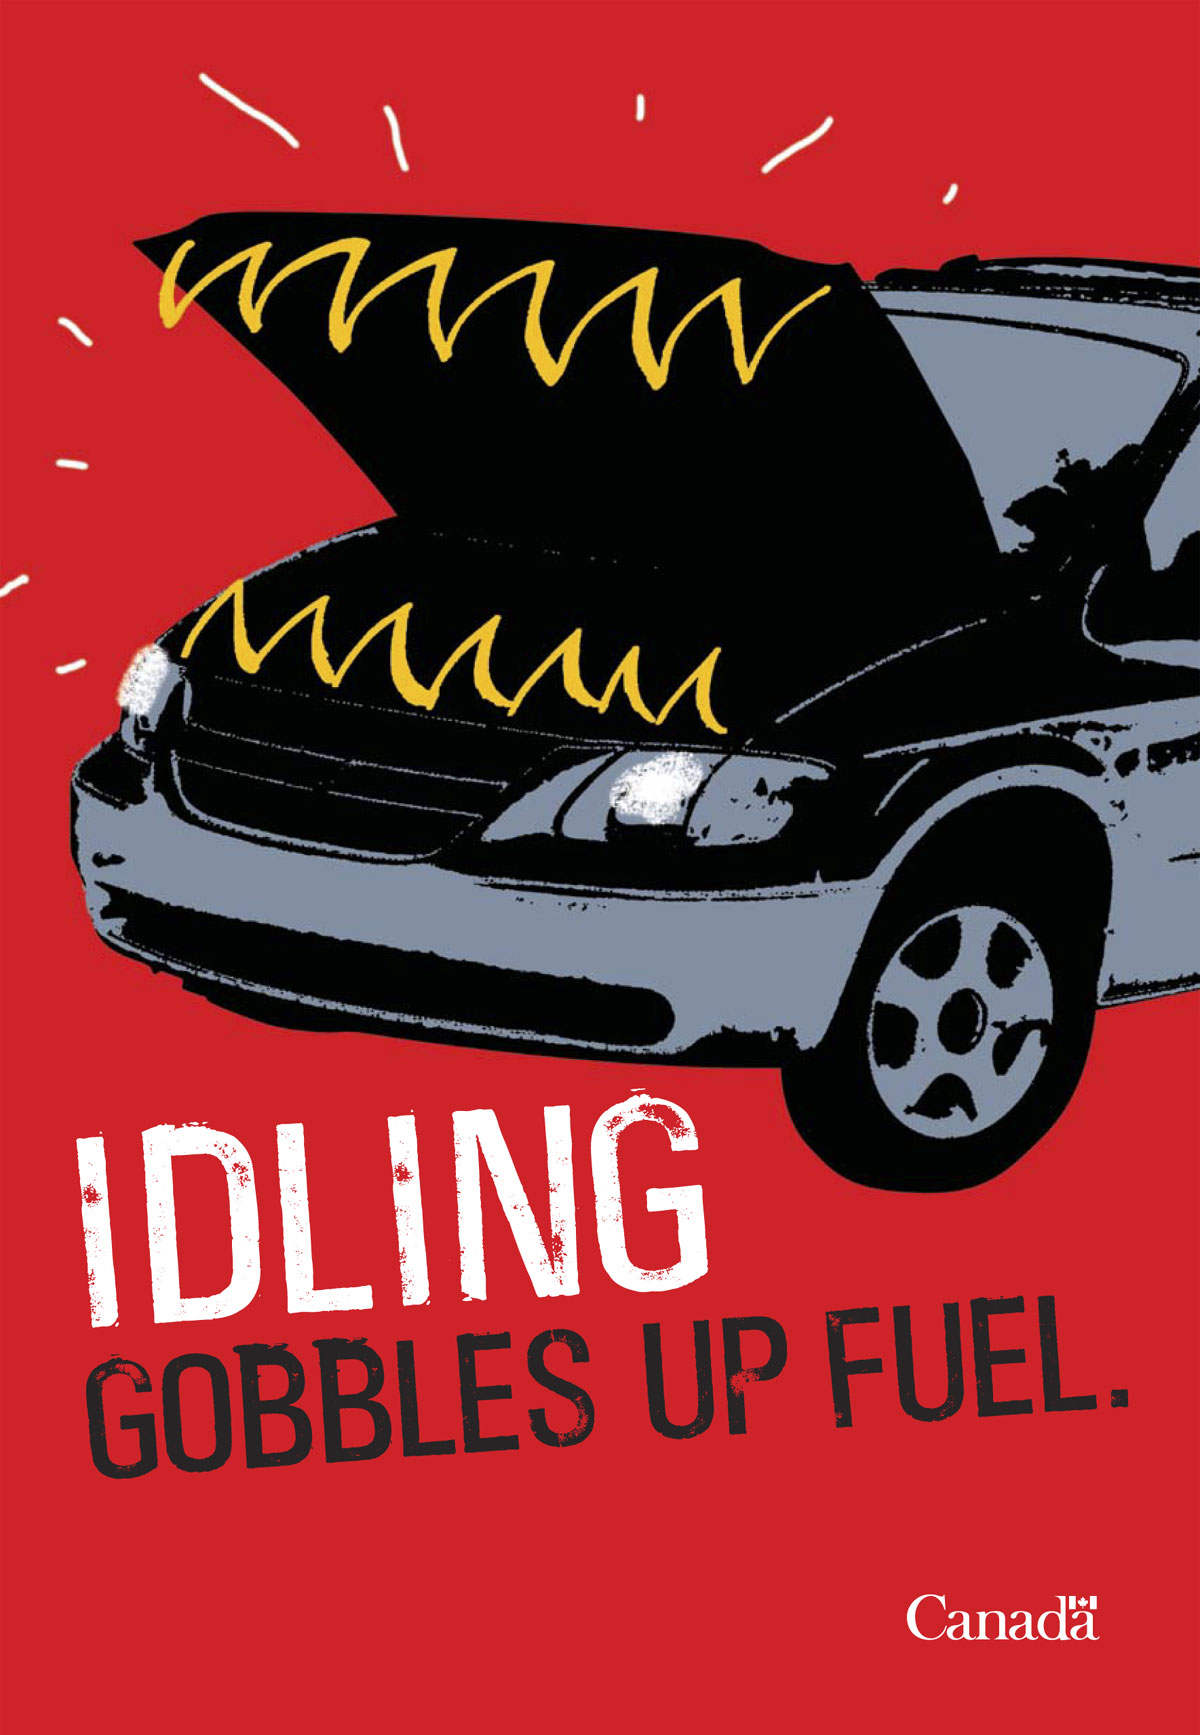 A Ready Made Vehicle Idling Campaign Natural Resources Canada